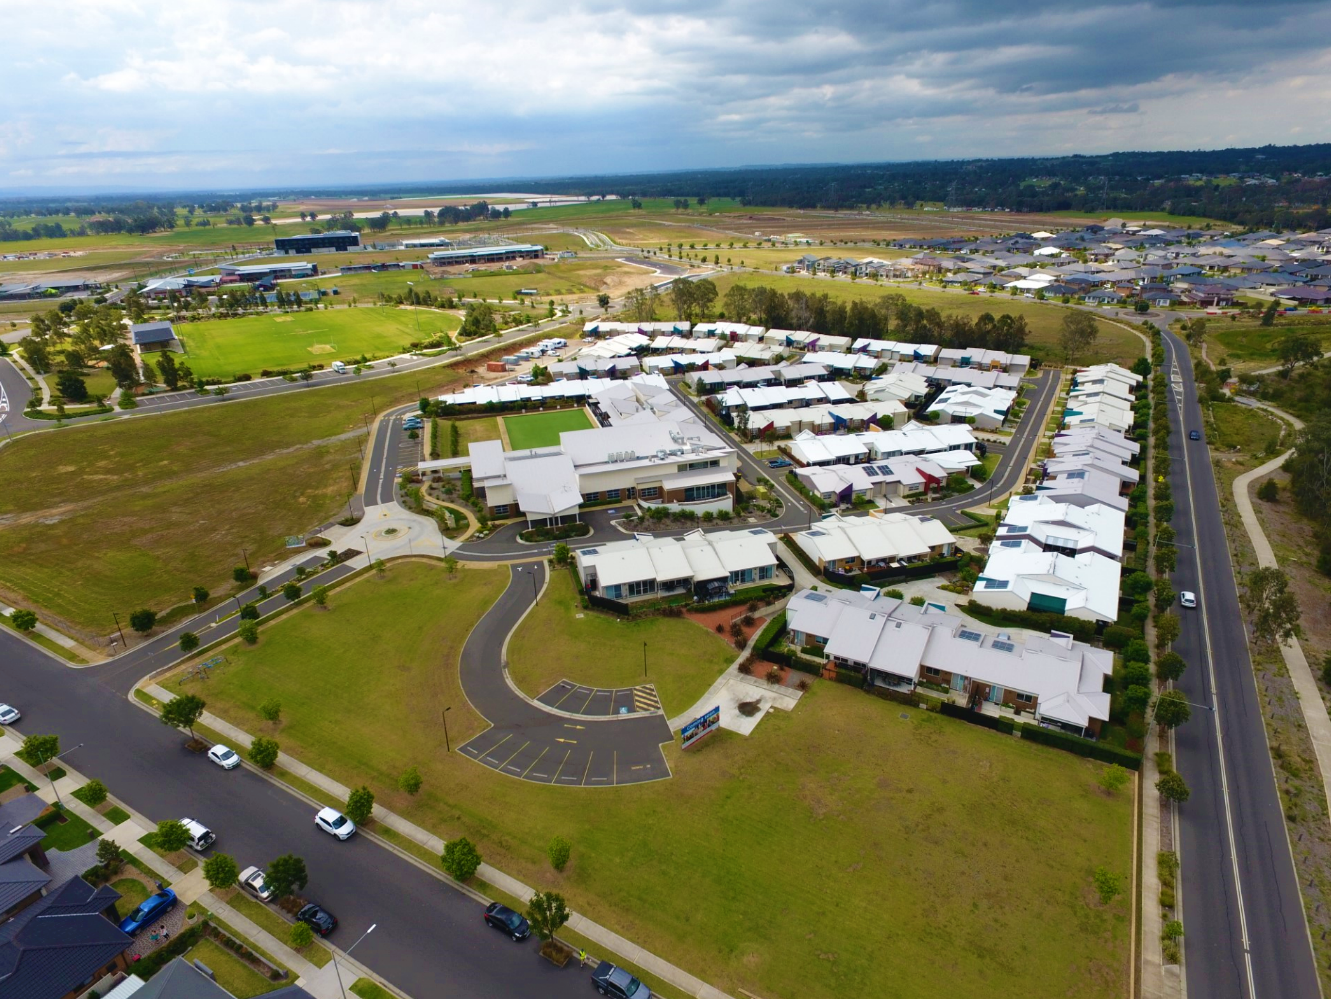 Anglicare Retirement Village Aerial